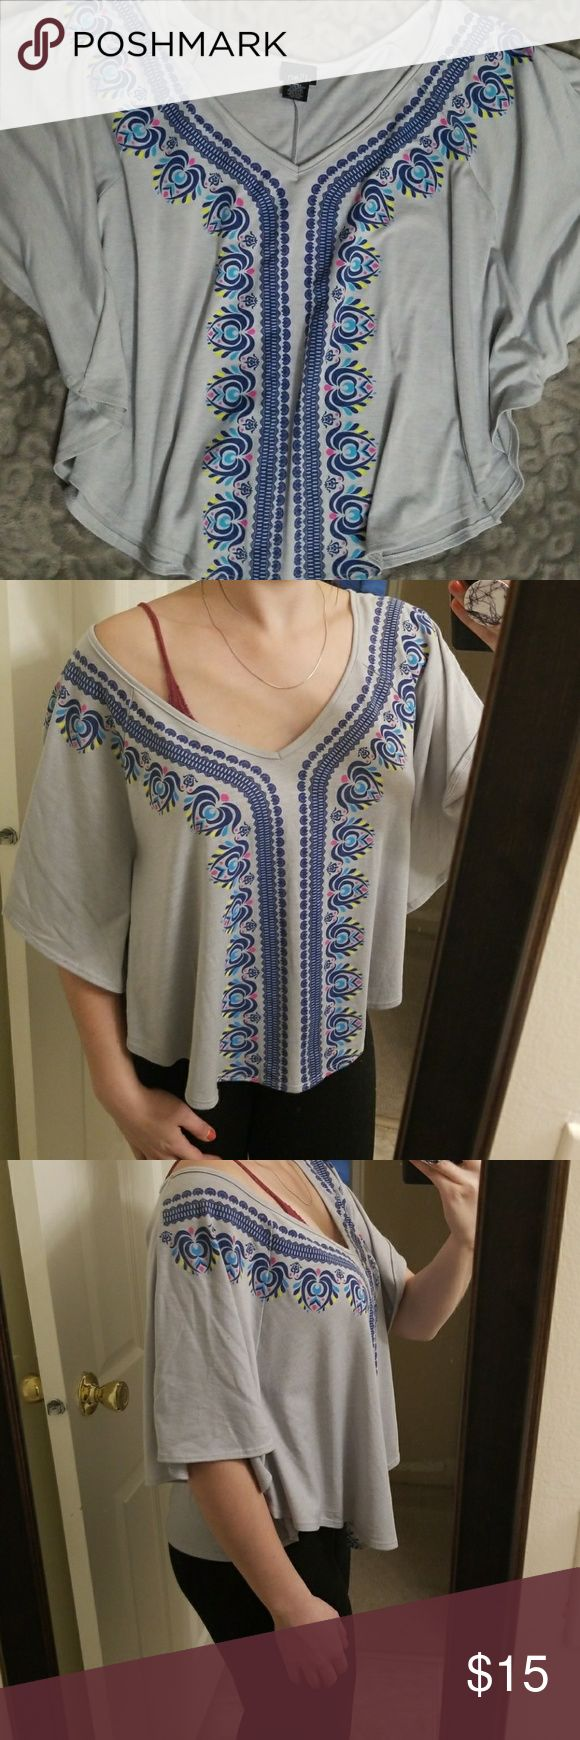 Batwing Top Small batwing style top, light blue/gray with blue, link, yellow, navy detail Rue 21 Tops